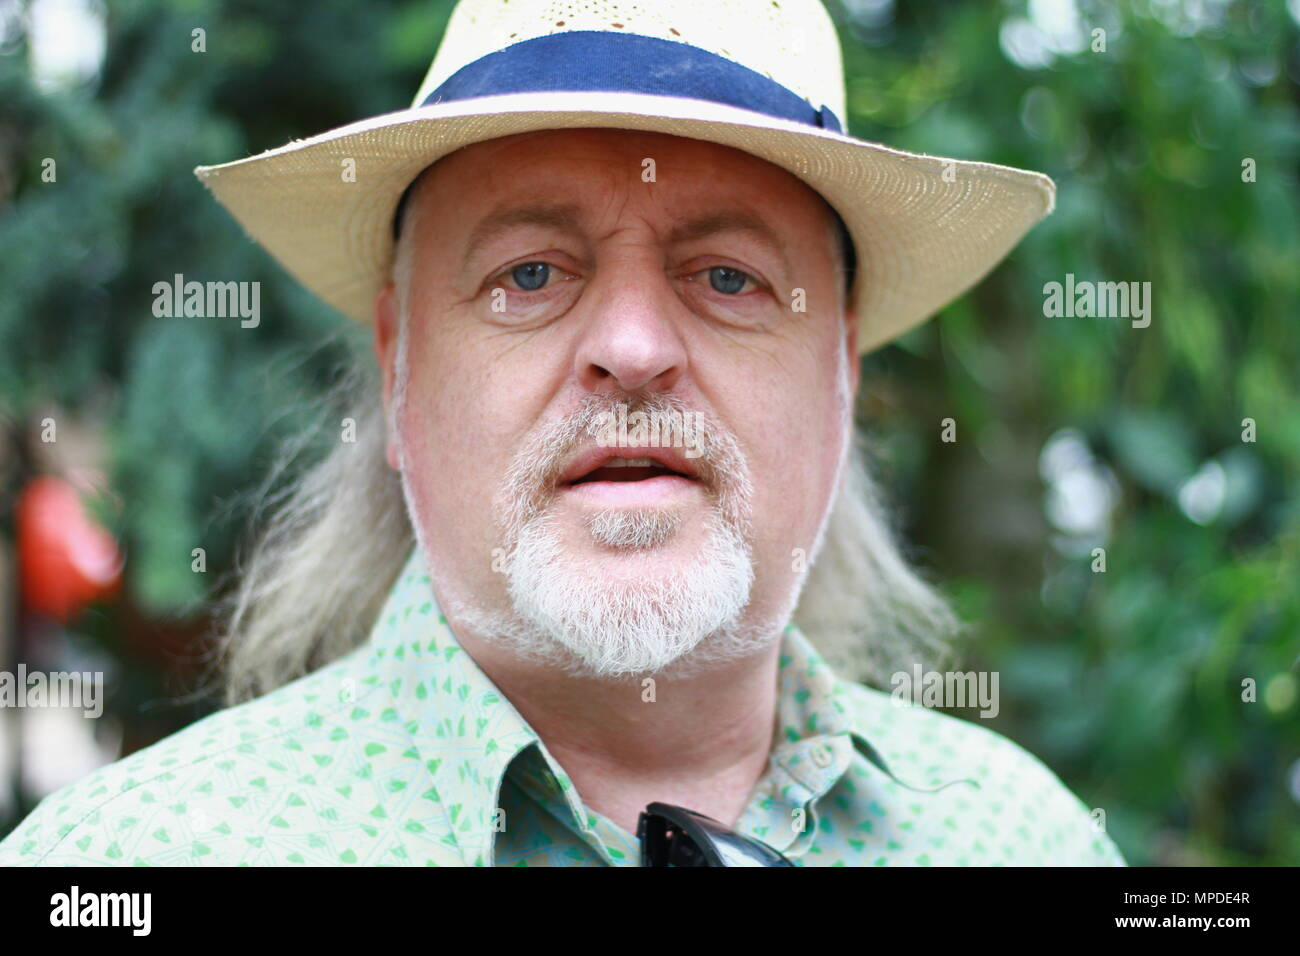 Bill Bailey photographed with his verbal consent at the Chelsea Flower show on press day on 21st May 2018. - Stock Image